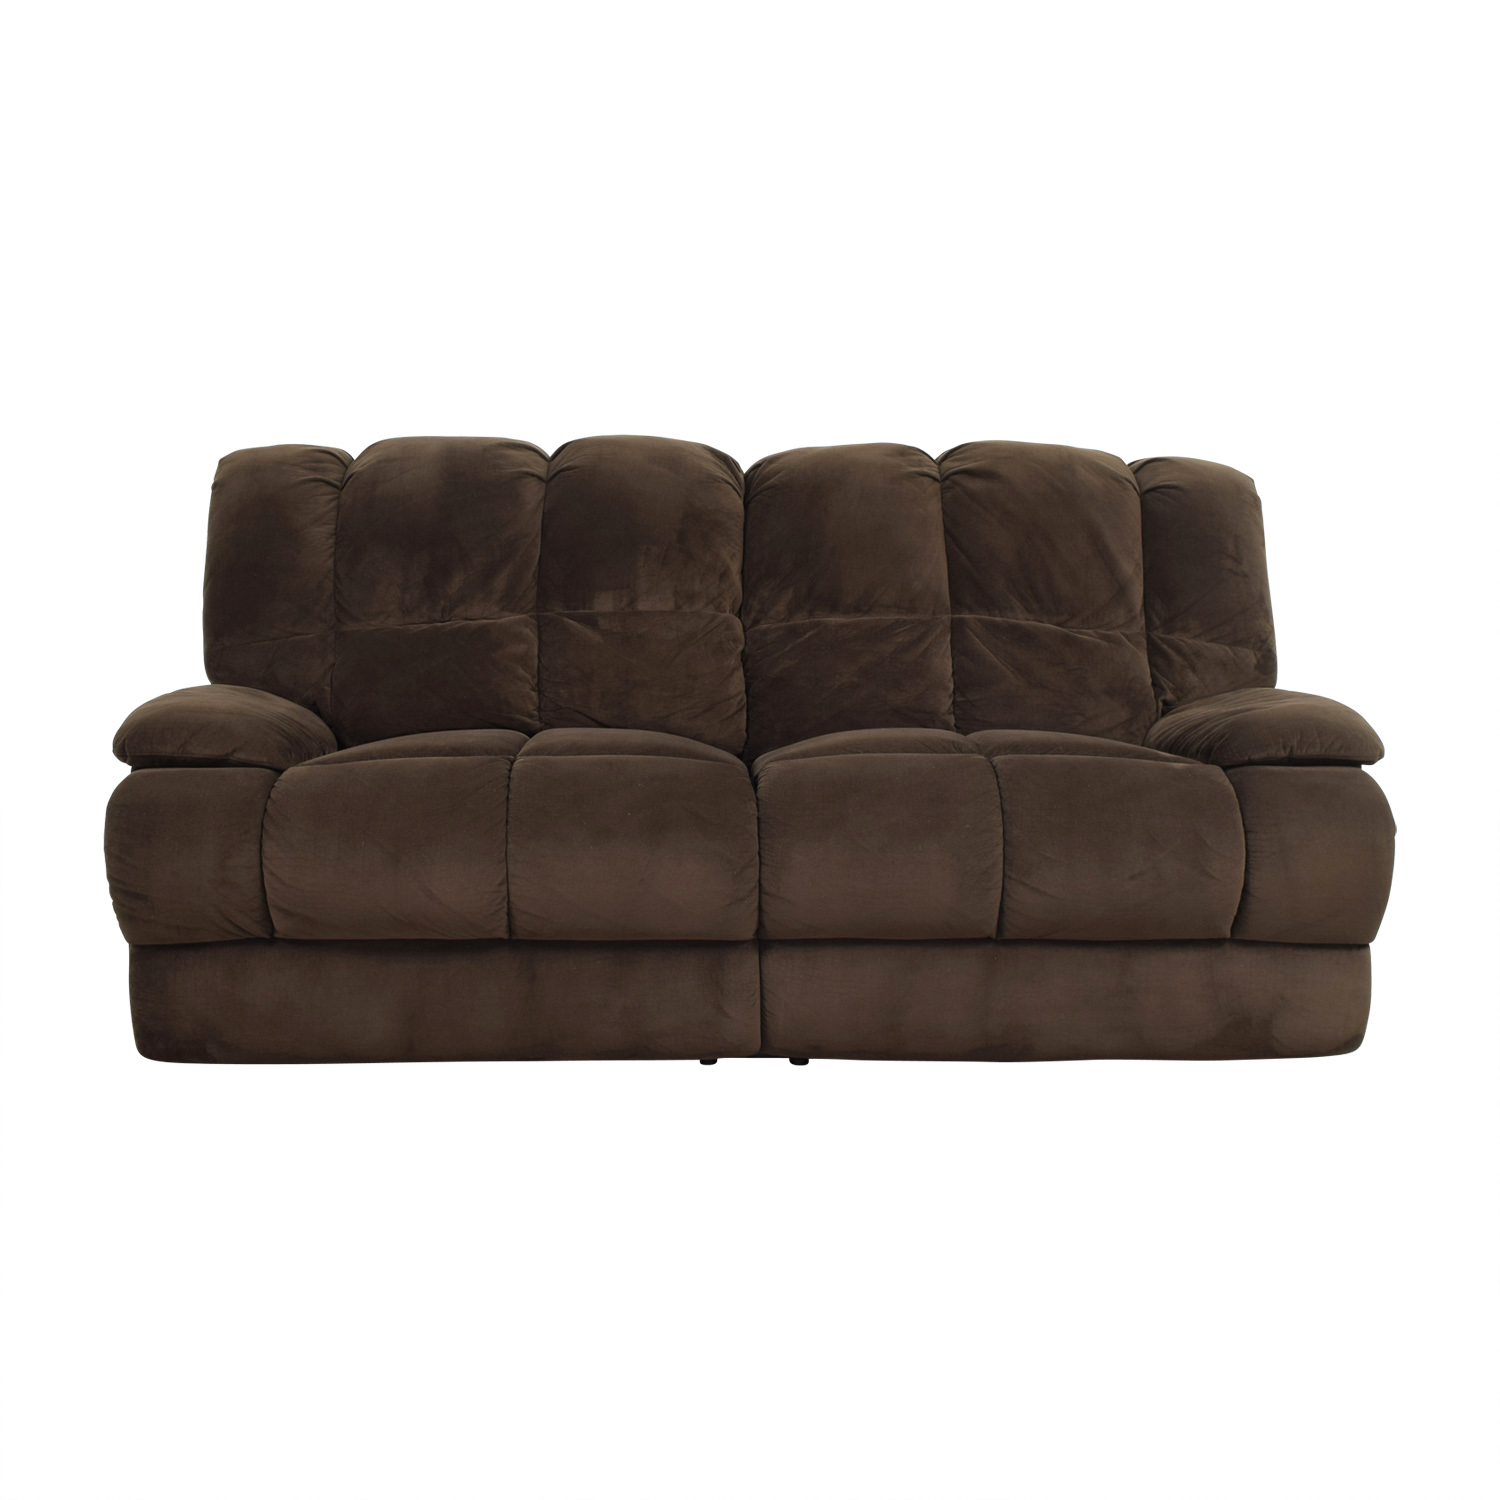 American Signature Furniture American Signature Furniture Brown Recliner Sofa Chairs ...  sc 1 st  Furnishare & 79% OFF - American Signature Furniture American Signature Furniture ...